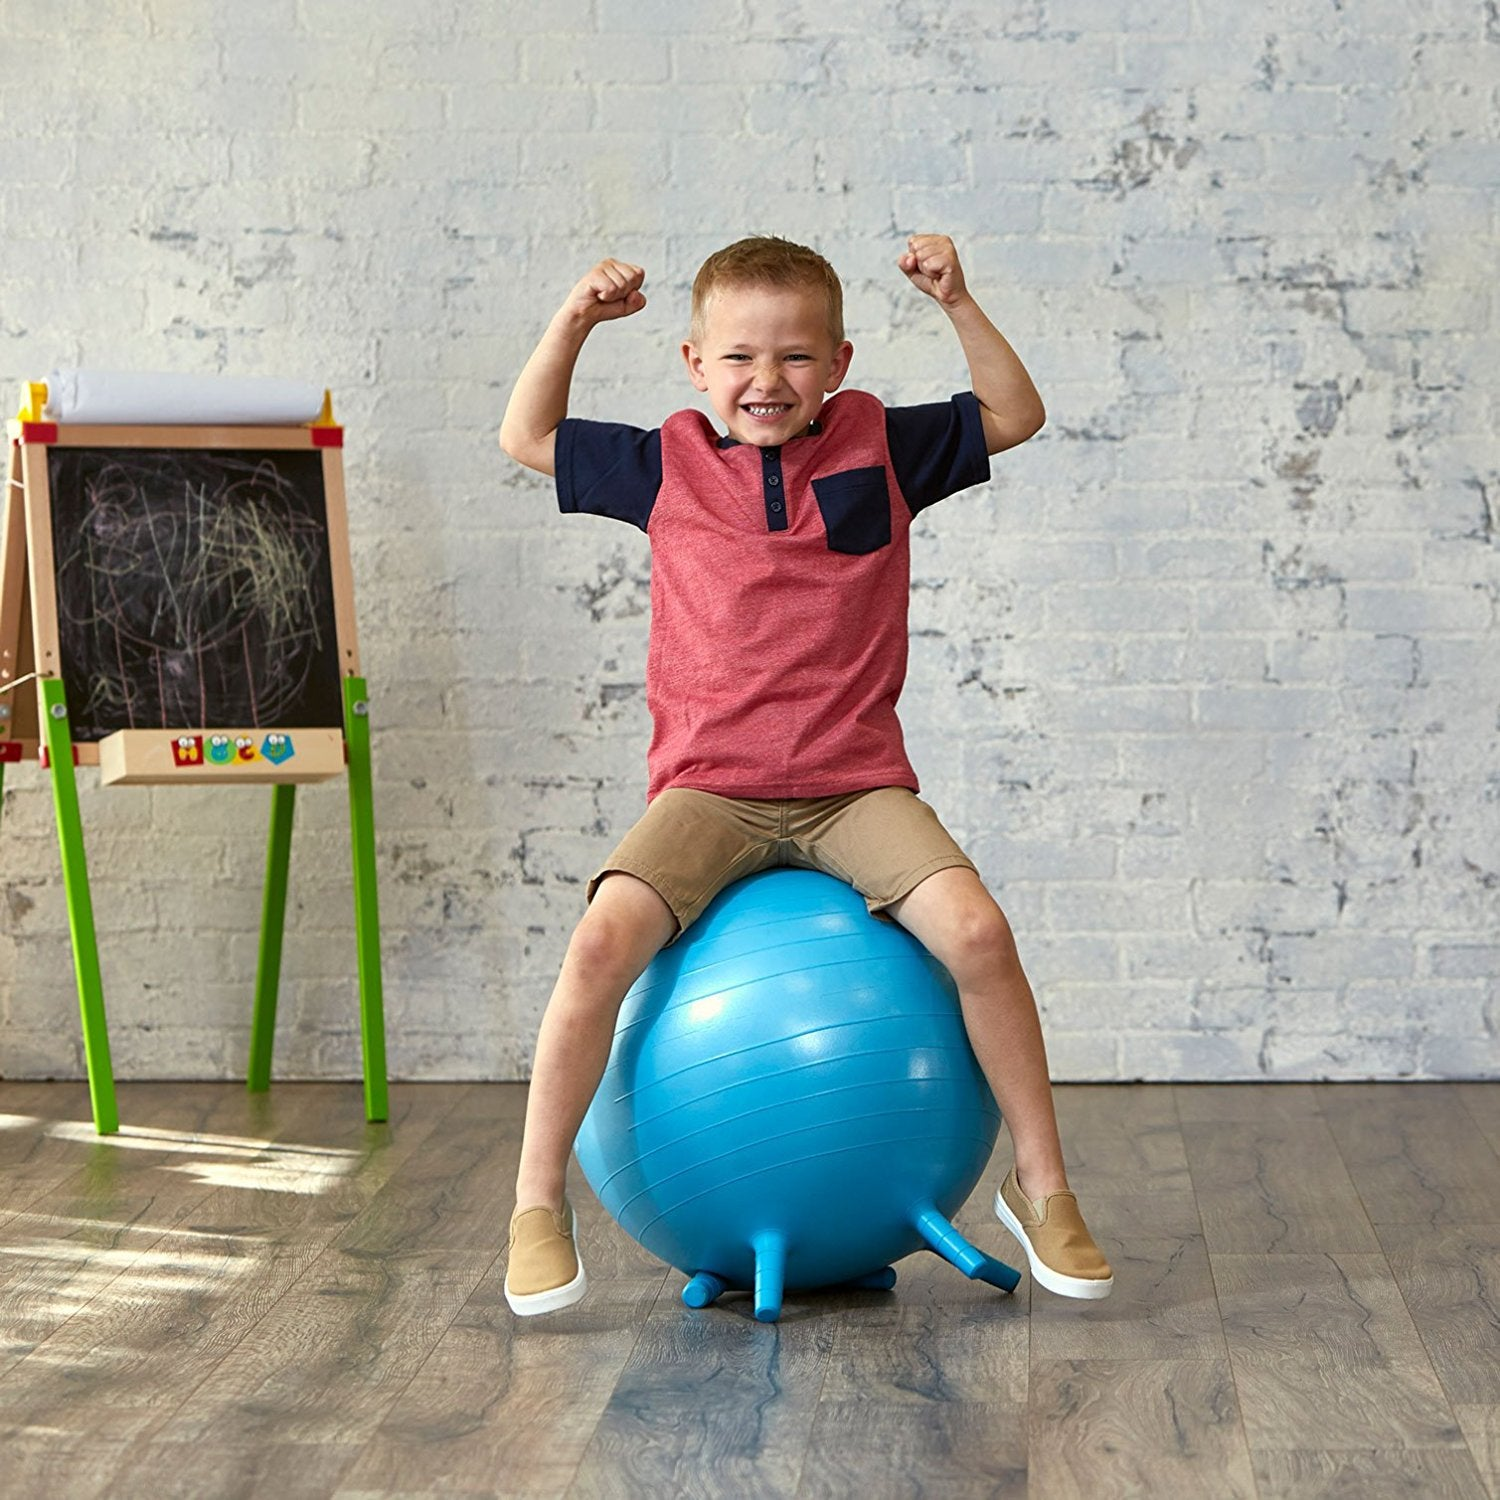 Stupendous Gaiam Kids Stay N Play Childrens Inflatable Balance Ball Caraccident5 Cool Chair Designs And Ideas Caraccident5Info